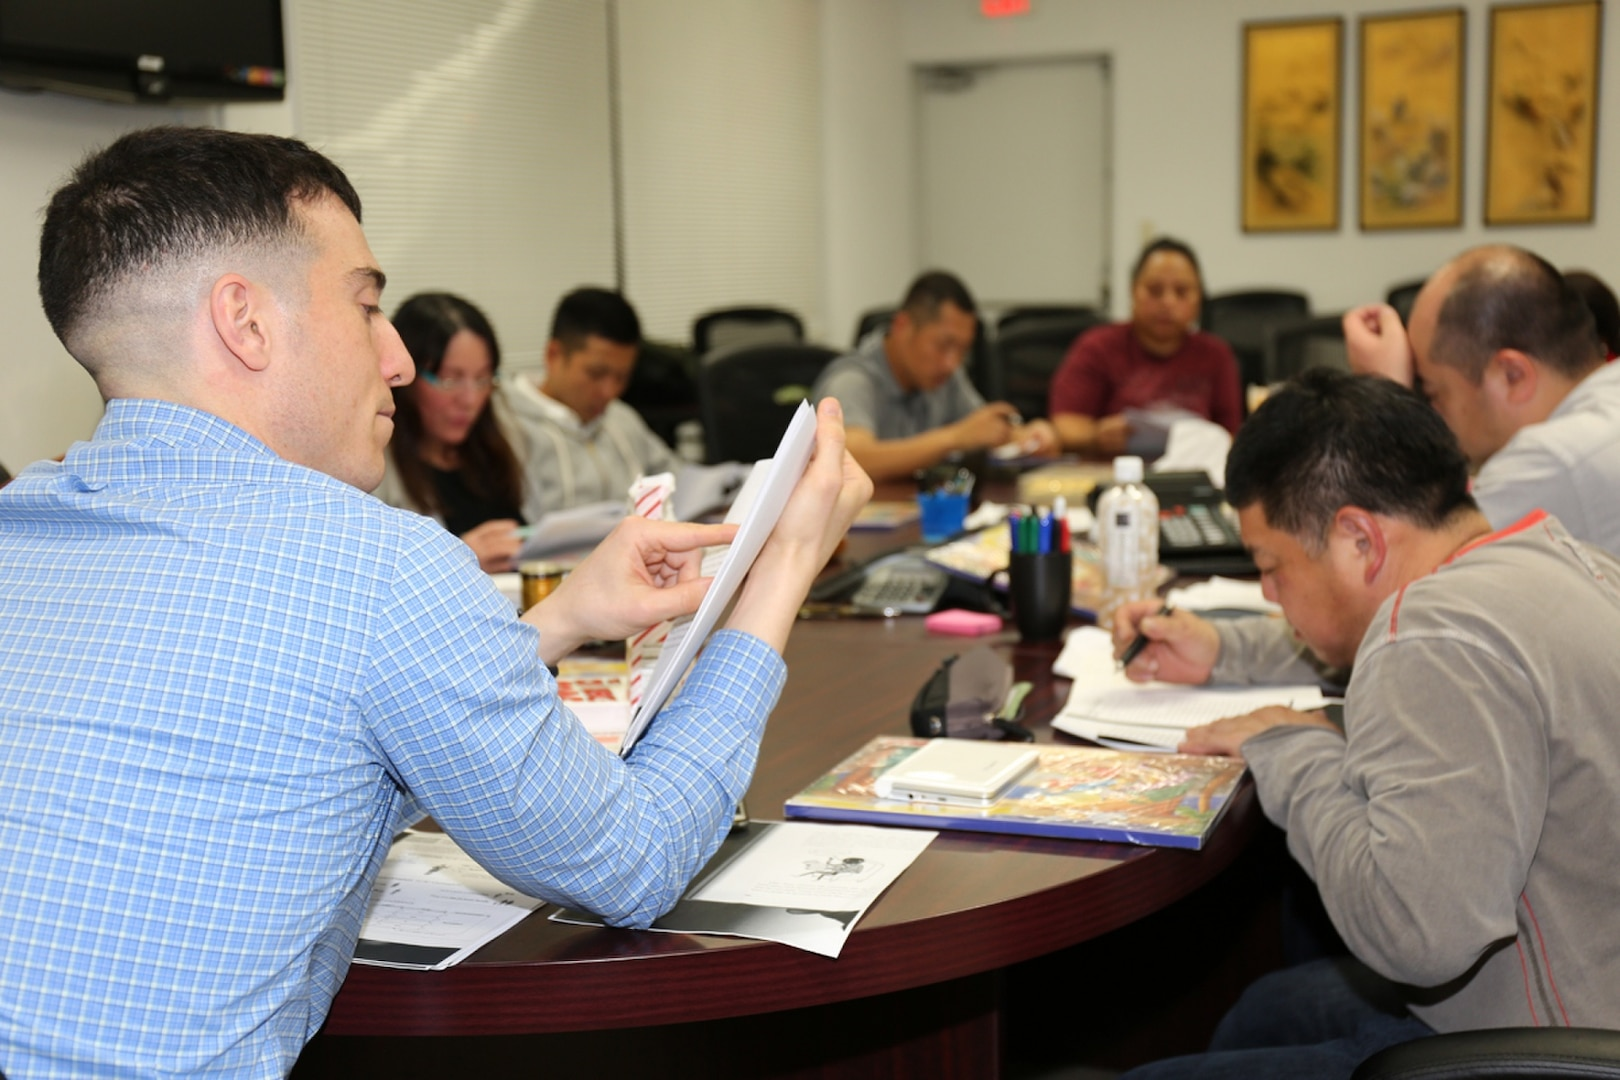 Soldier voluntarily teach English and learn Japanese: win-win opportunity